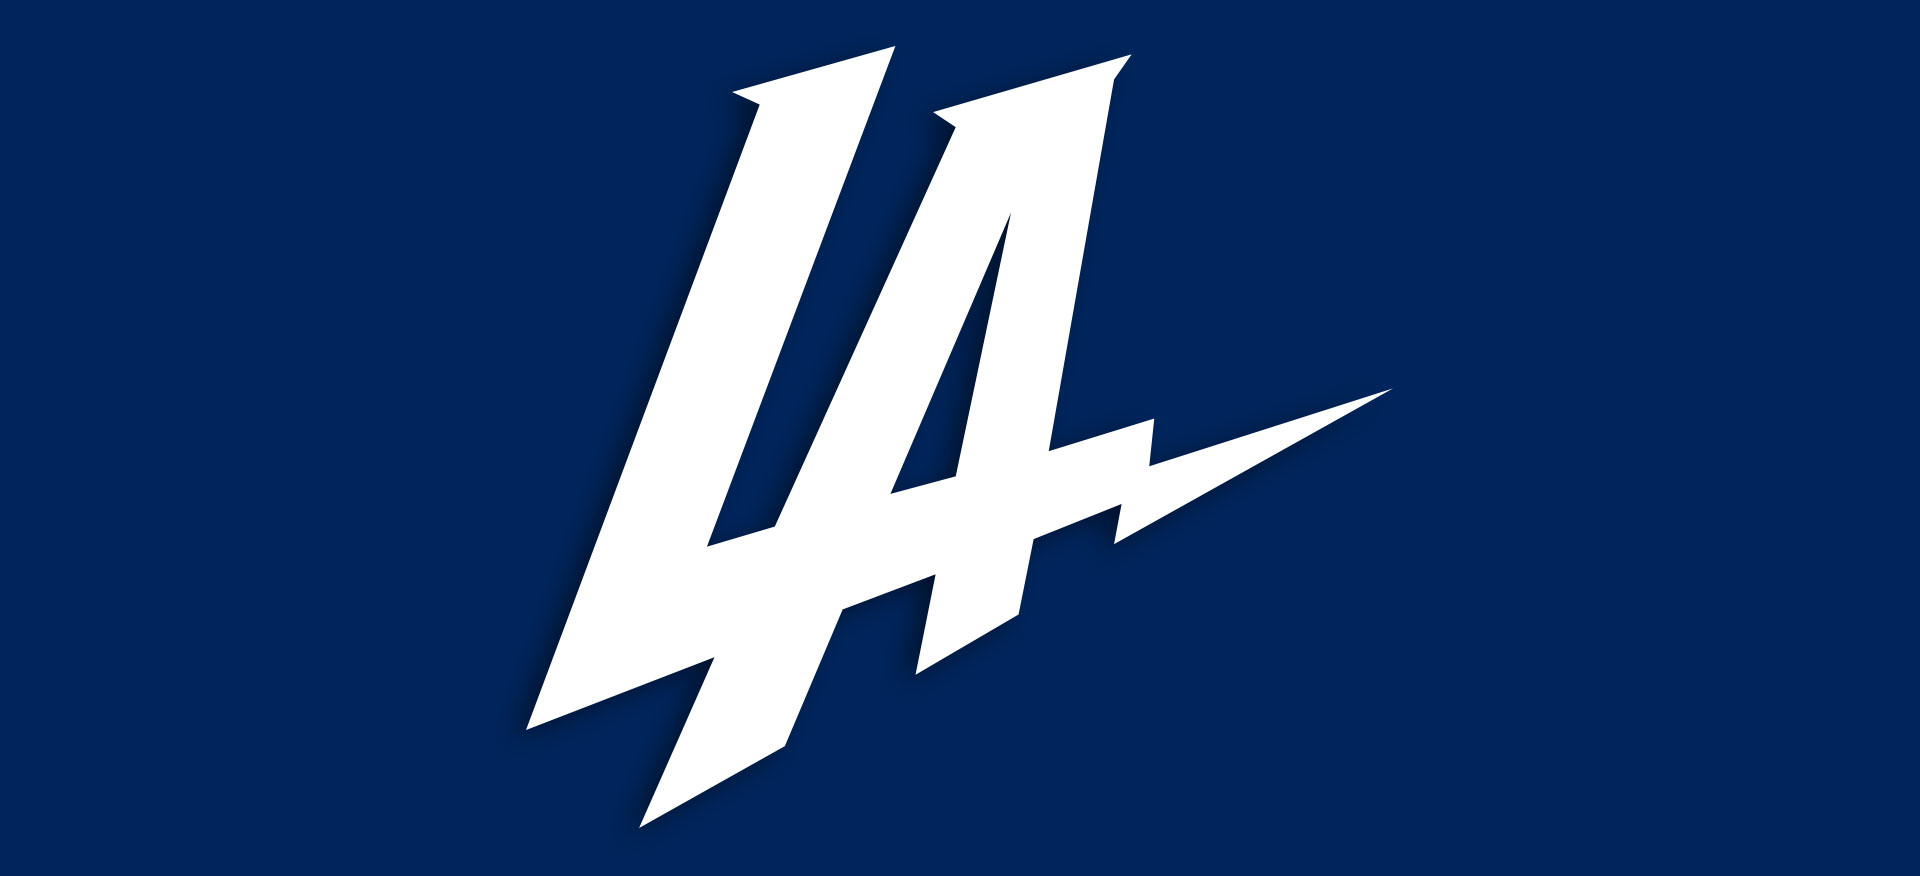 Confirmed San Diego Chargers Are Moving To Los Angeles